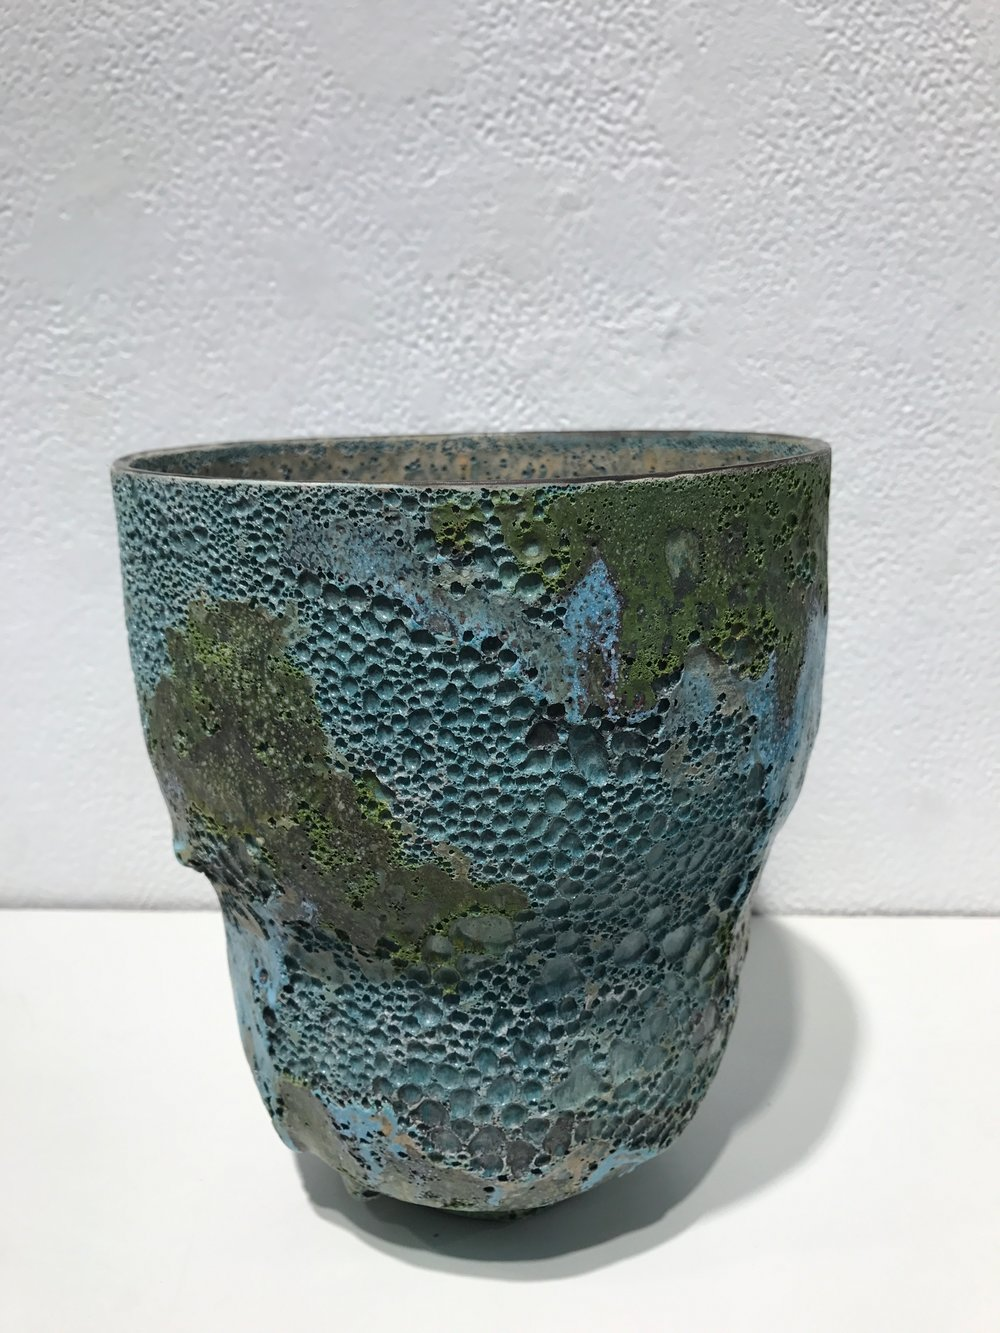 25 -  Double Lobed Bowl , 2016   Ceramic, crater glaze - Signed and dated H. 19,7 x D. 16,5 cm H. 7.75 x D. 6.5 in. Unique  JK#1281-2